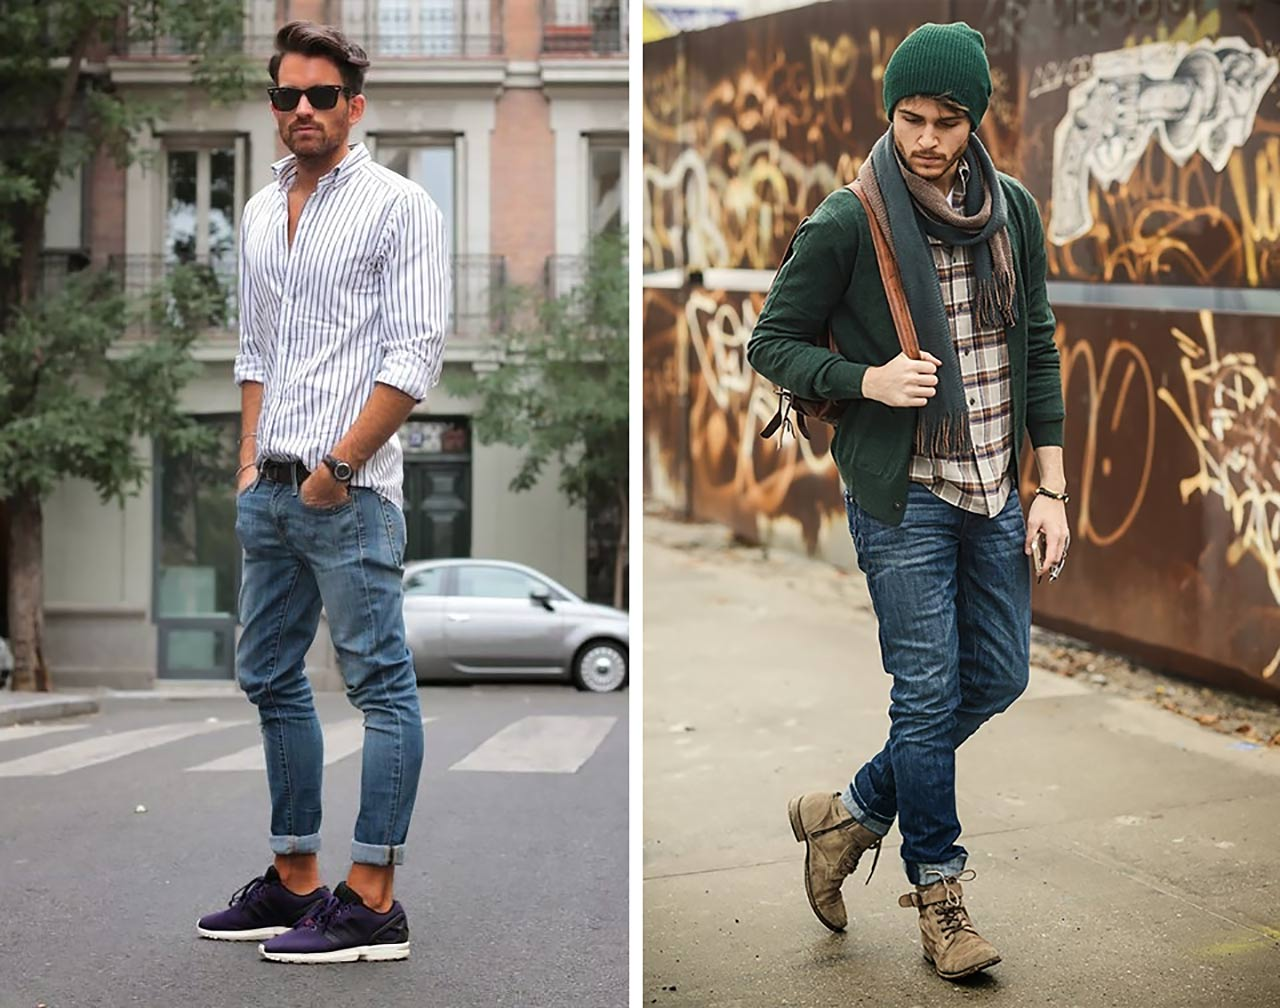 Stay trendy and casual with Expressâ s menâ s skinny jeans. These jeans were designed for a form-fitting look, so you donâ t need to worry about your jeans being too loose. You can pair our skinny jeans with a casual button-down shirt, polo, or t shirt for a cool and casual look. Shop these jeans now!